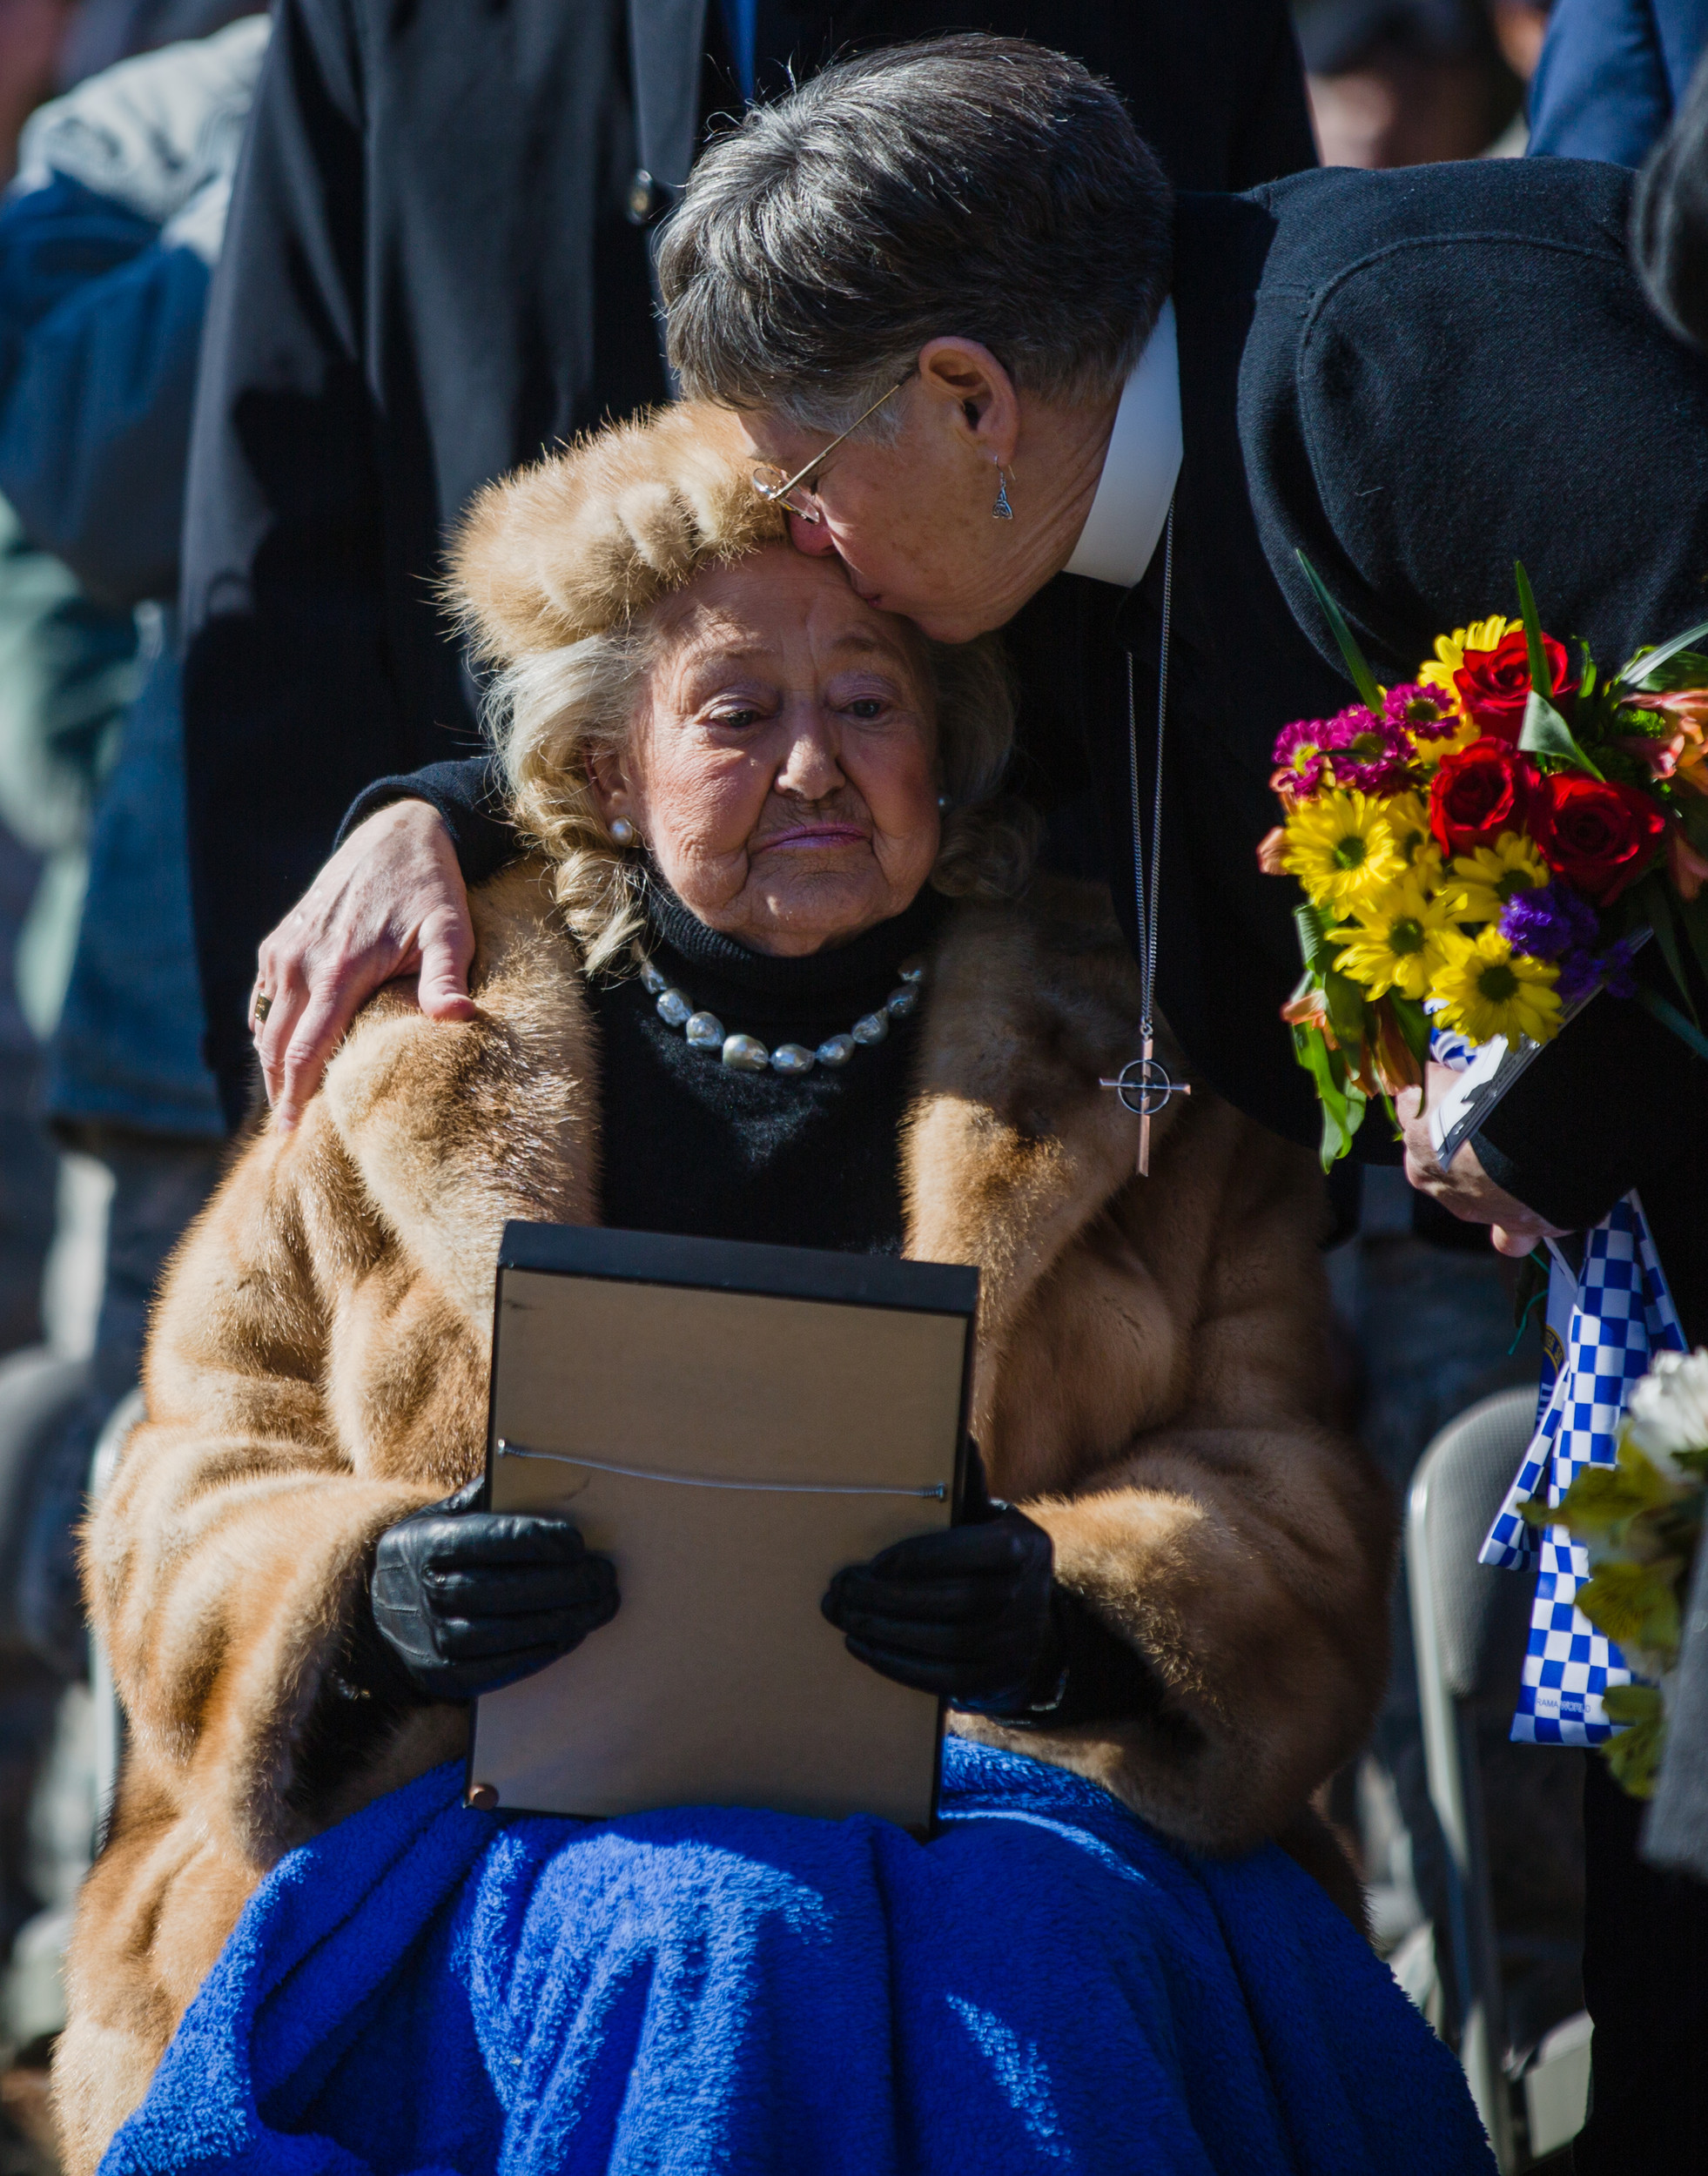 Jacqueline Heckel, wife of honored former POW the late Lt. Charles C. Heckel, attends a ceremony in her husband's honor at Shaw Air Force Base on Friday. Lt. Heckel was honored with a Prisoner of War Commendation.